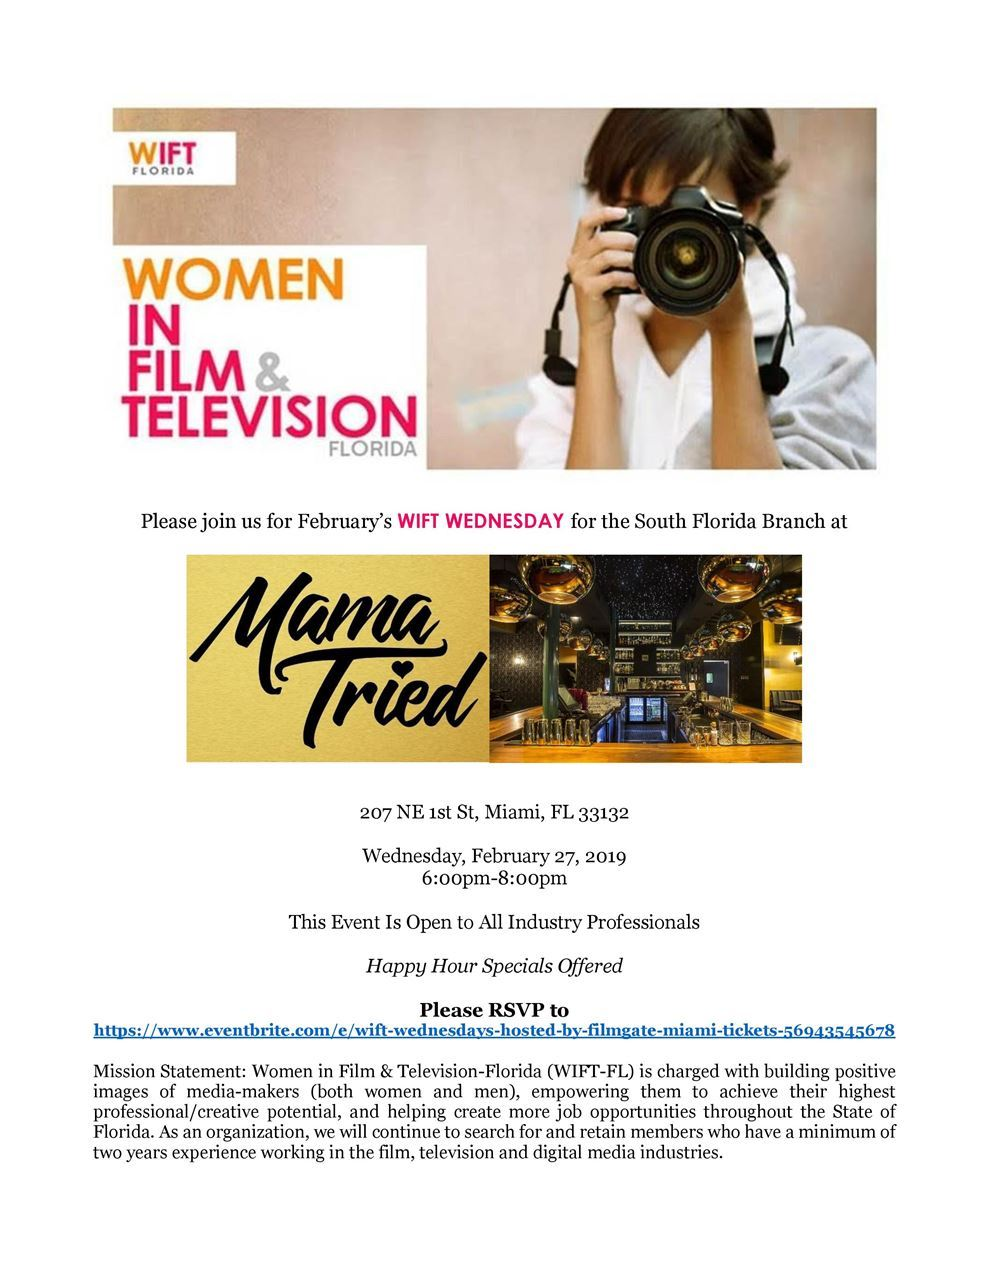 Women in Film & Television - FL - WIFT South Florida Wift